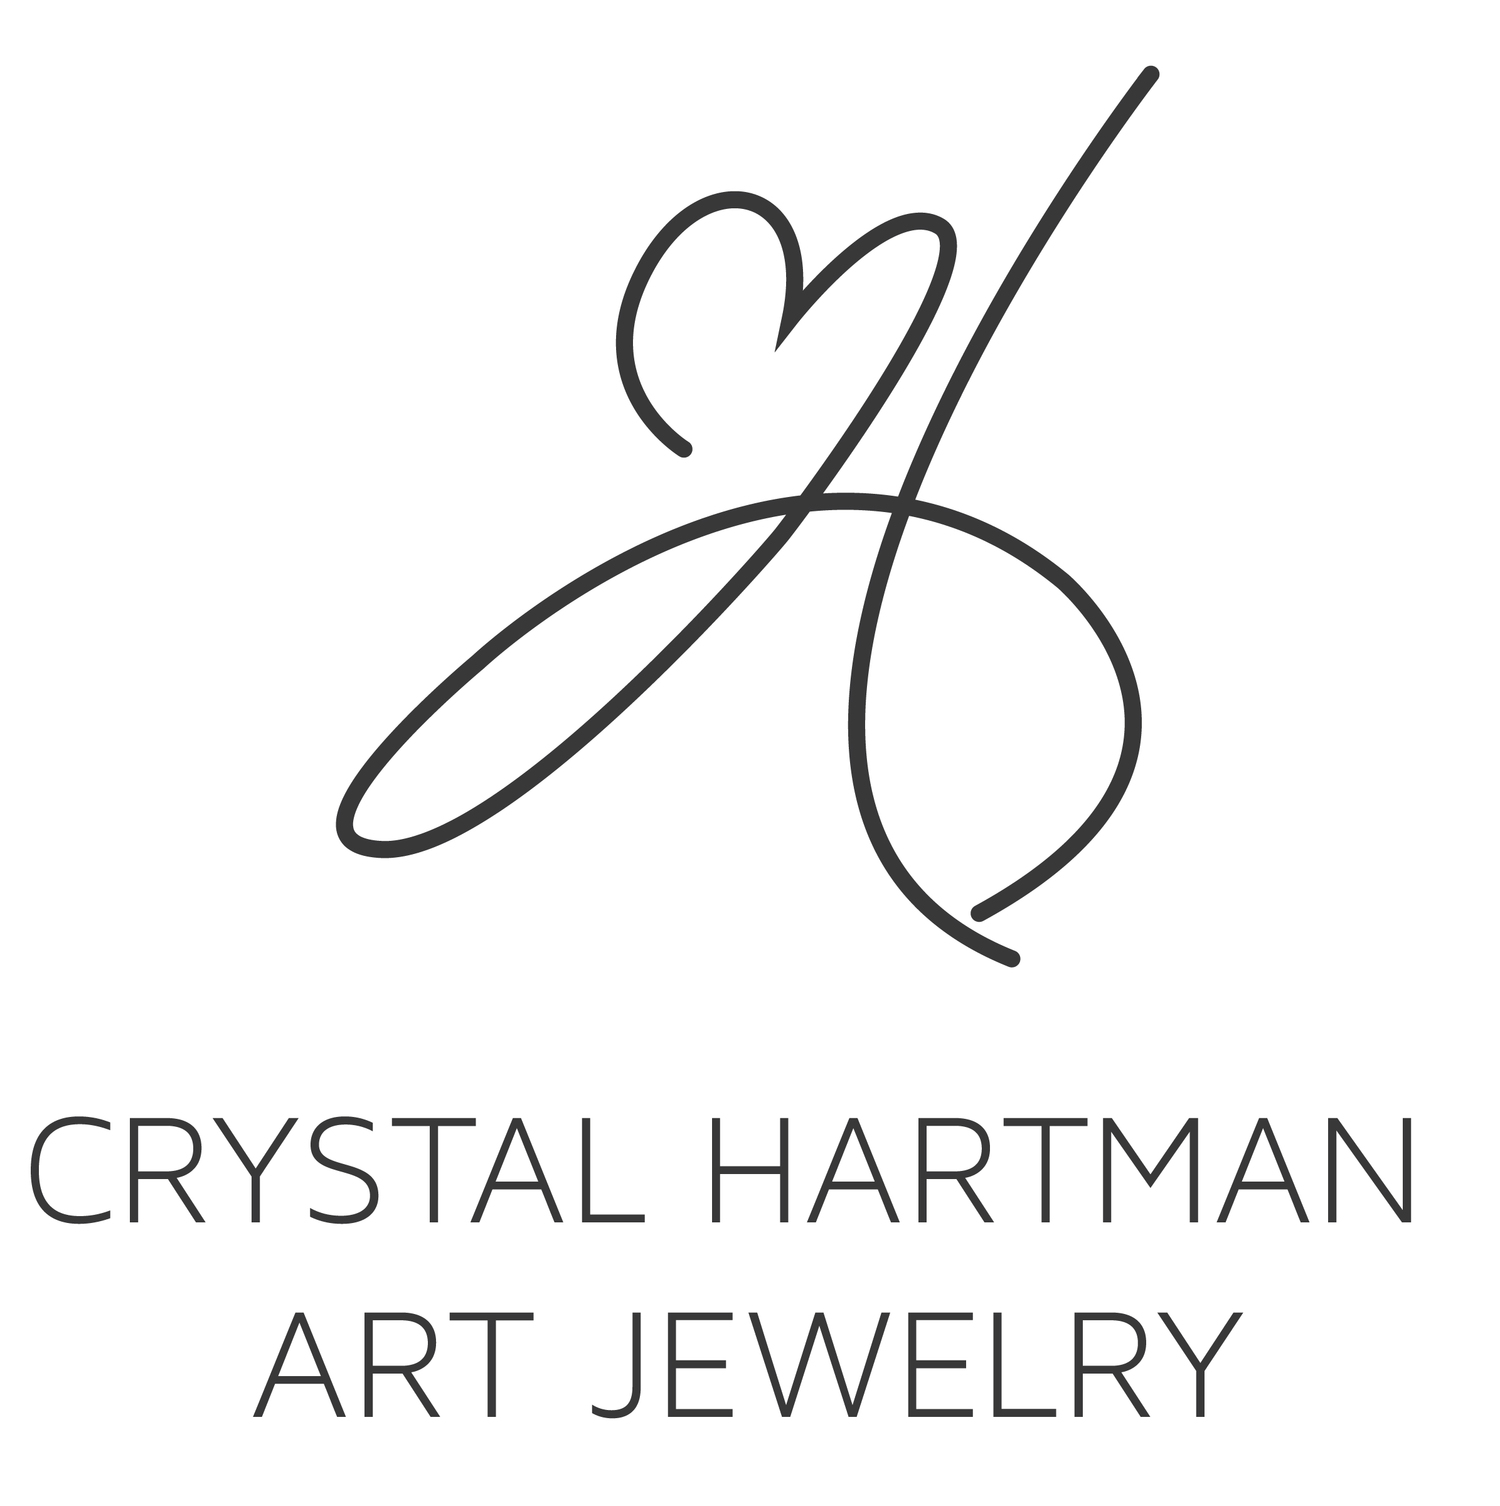 Crystal Hartman Art Jewelry